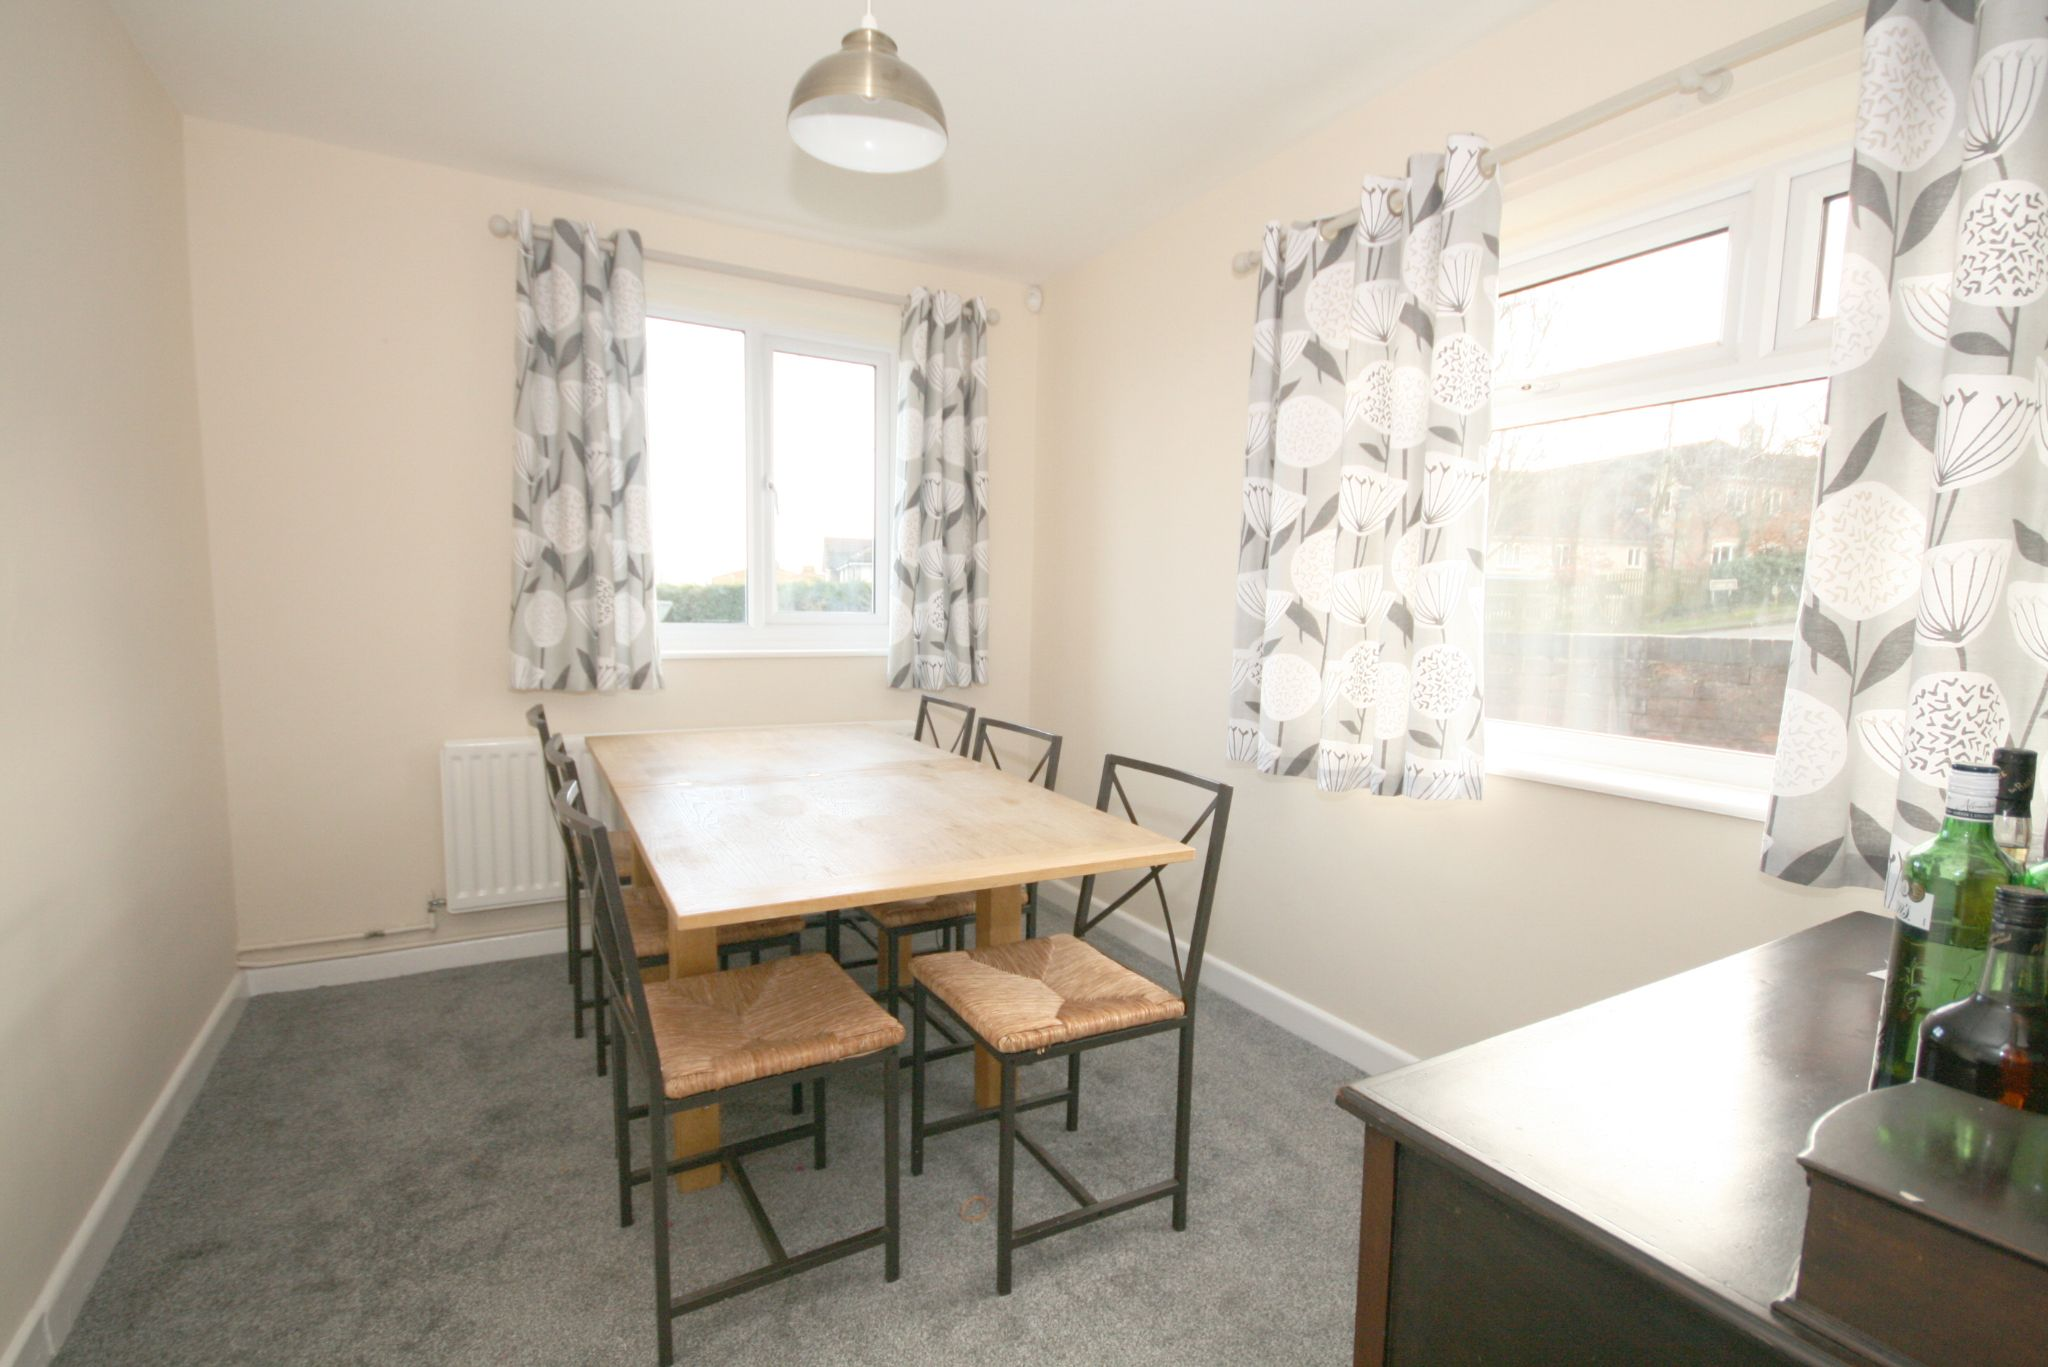 3 Bedroom Detached Bungalow For Sale - Photograph 4